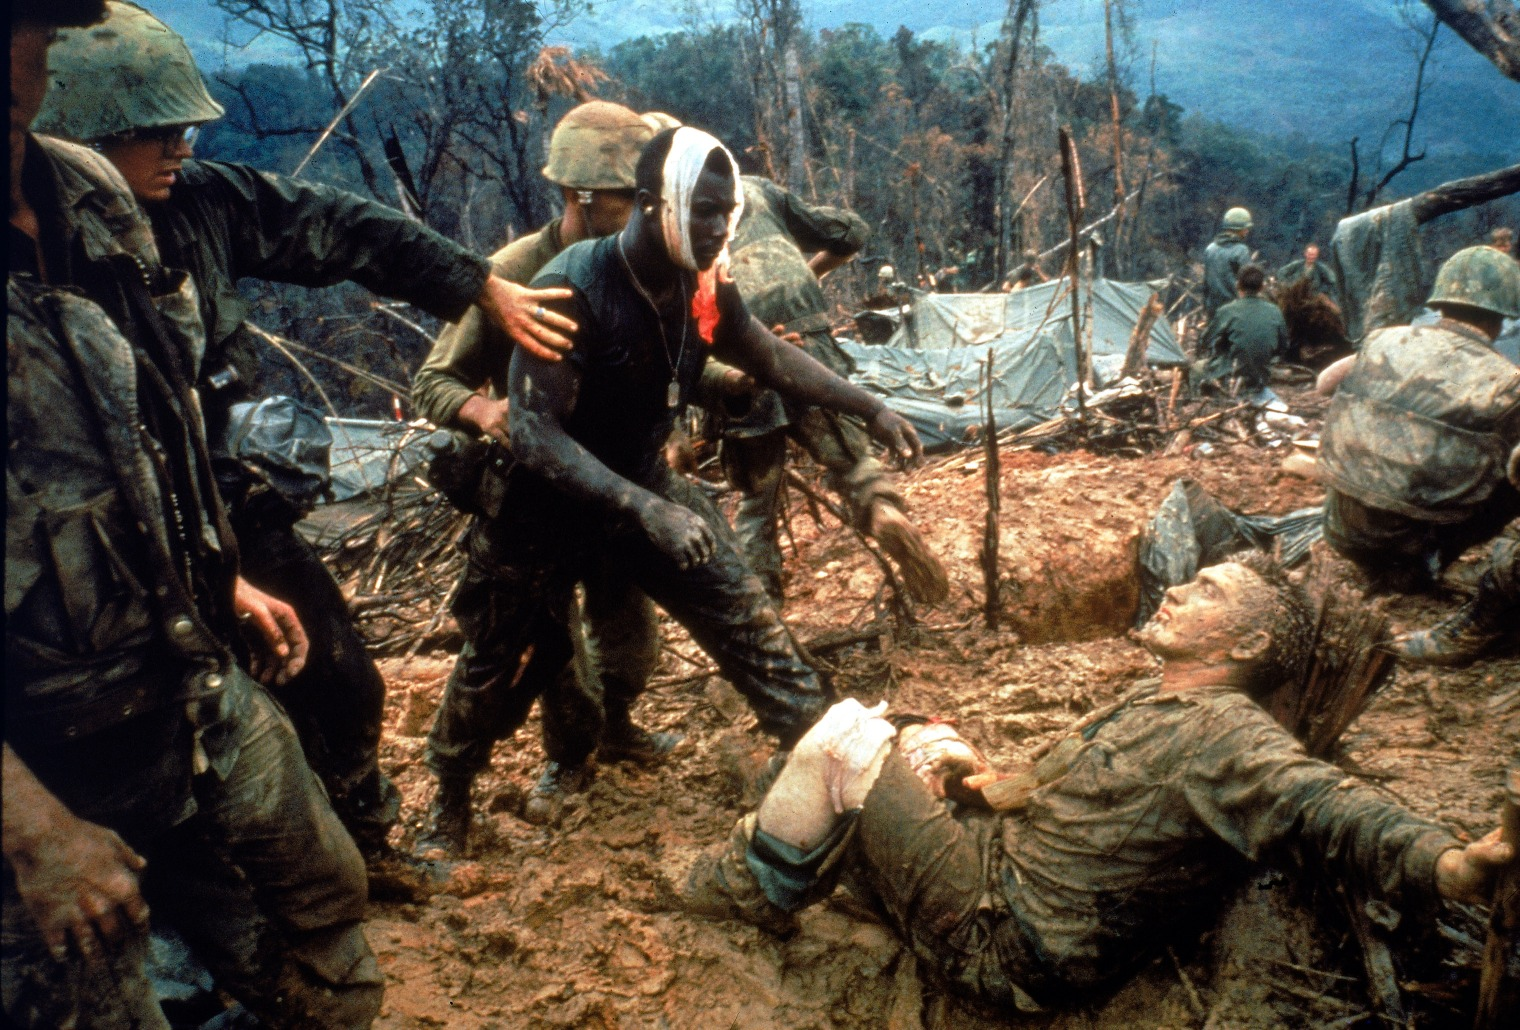 The Vietnam War The Pictures That Moved That Most